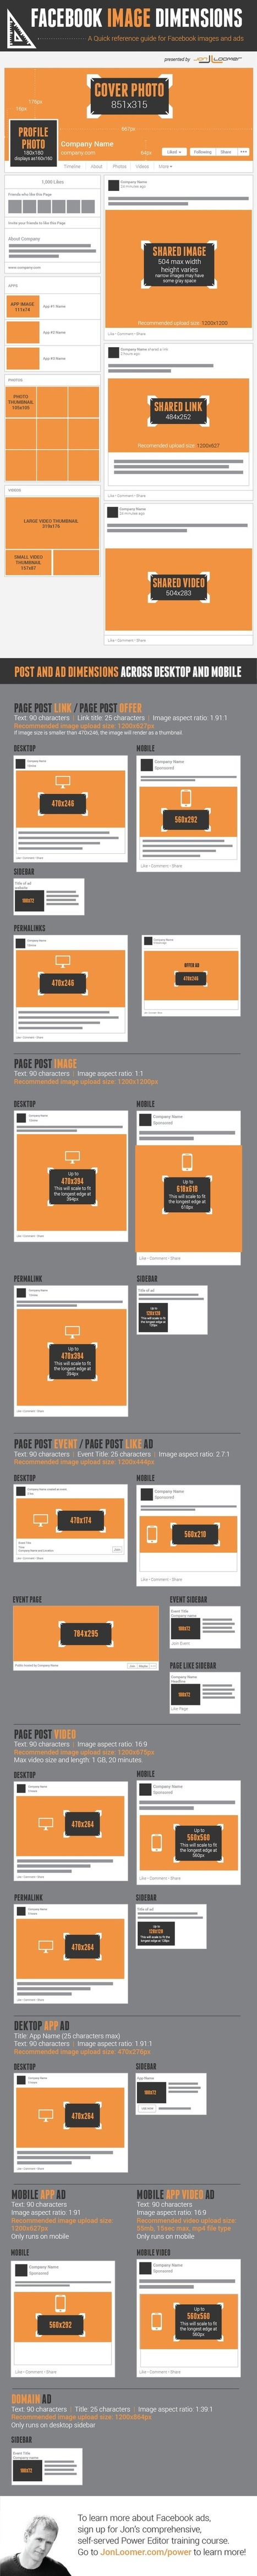 All Facebook Image Dimensions: Timeline, Posts, Ads [Infographic] | Artdictive Habits : Sustainable Lifestyle | Scoop.it